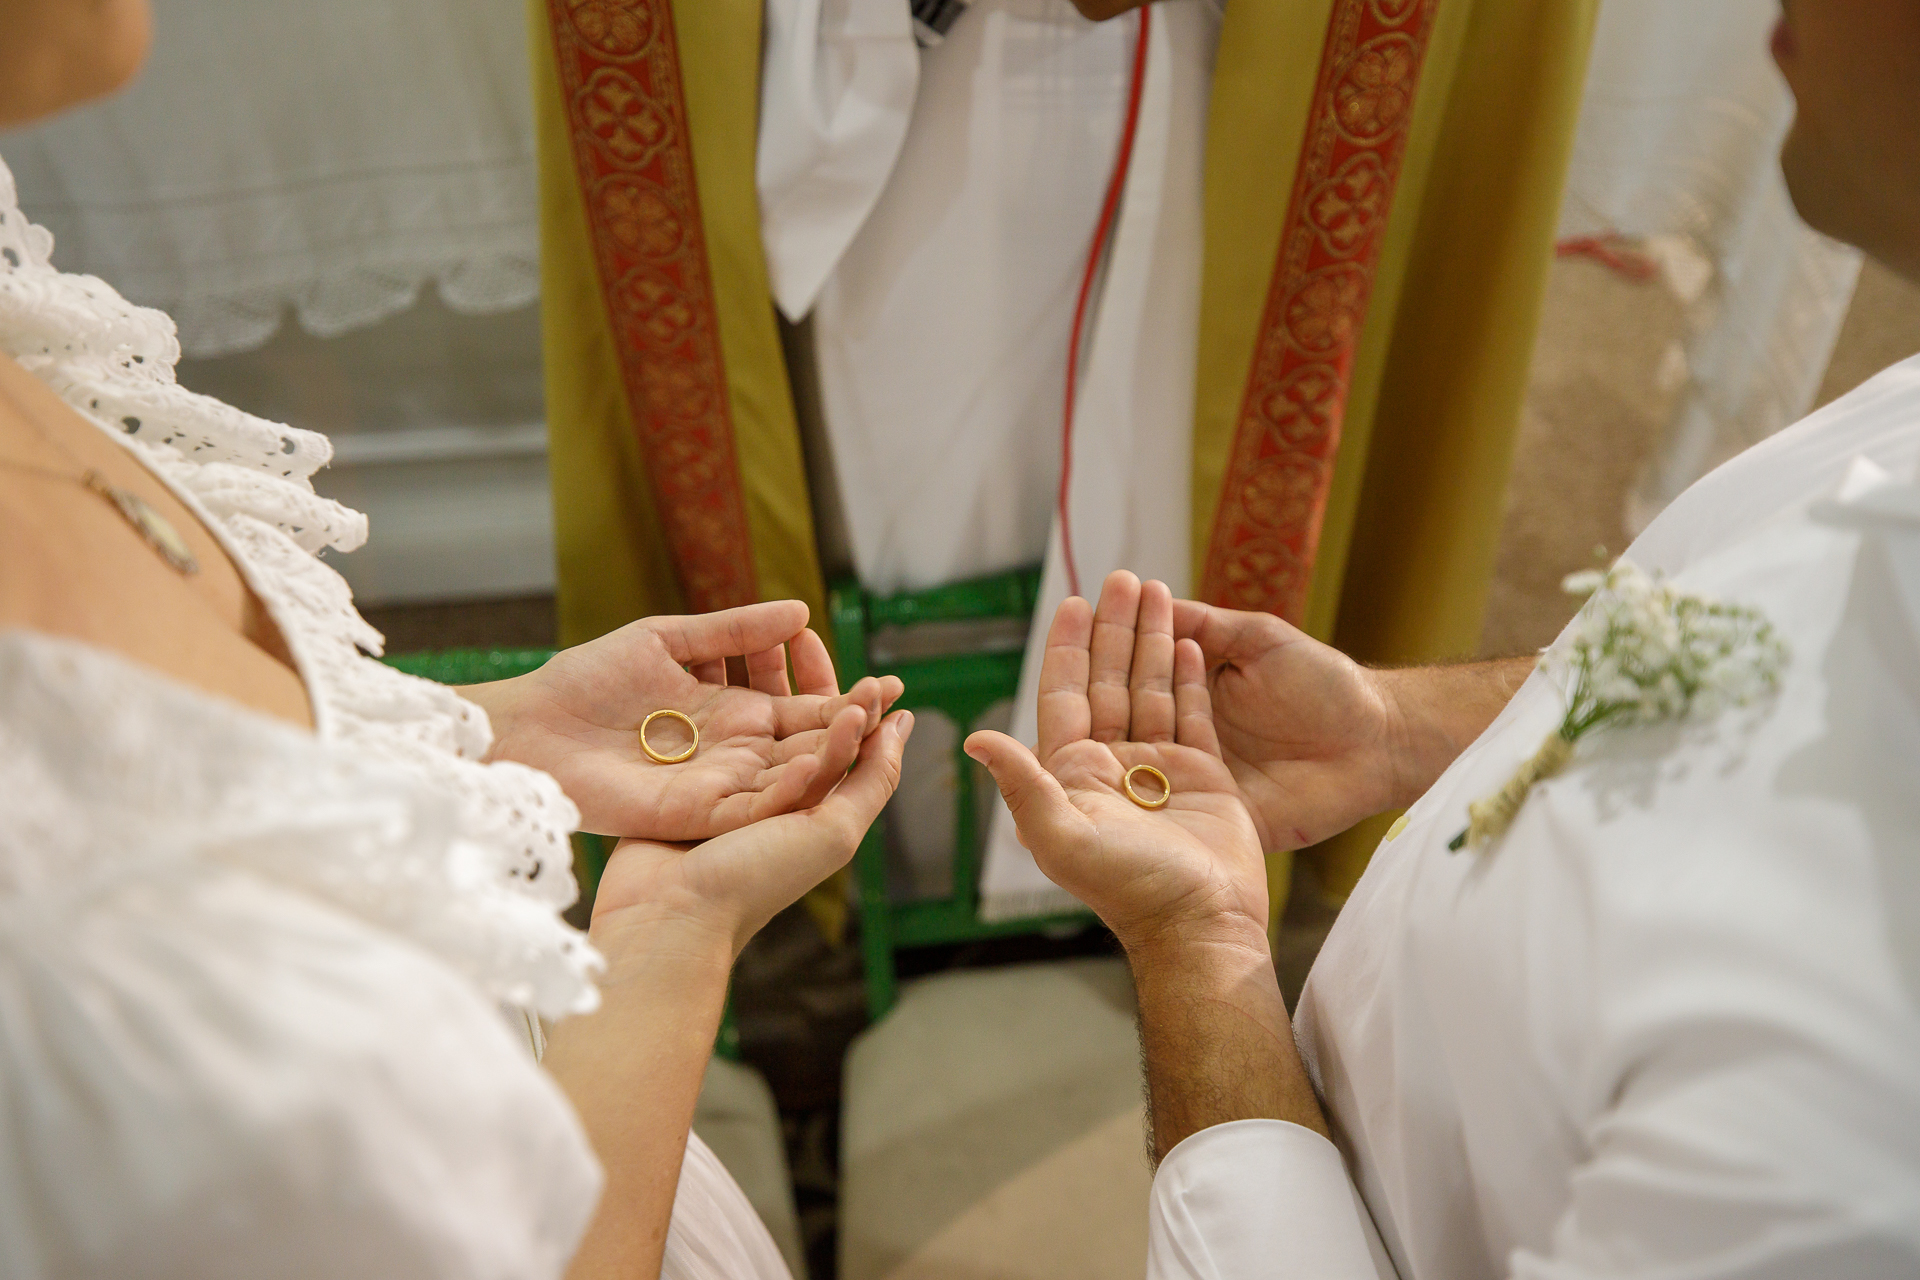 Church Wedding Ceremony Image from Maceio, AL, Brazil | The rings are blessed during the religious ceremony